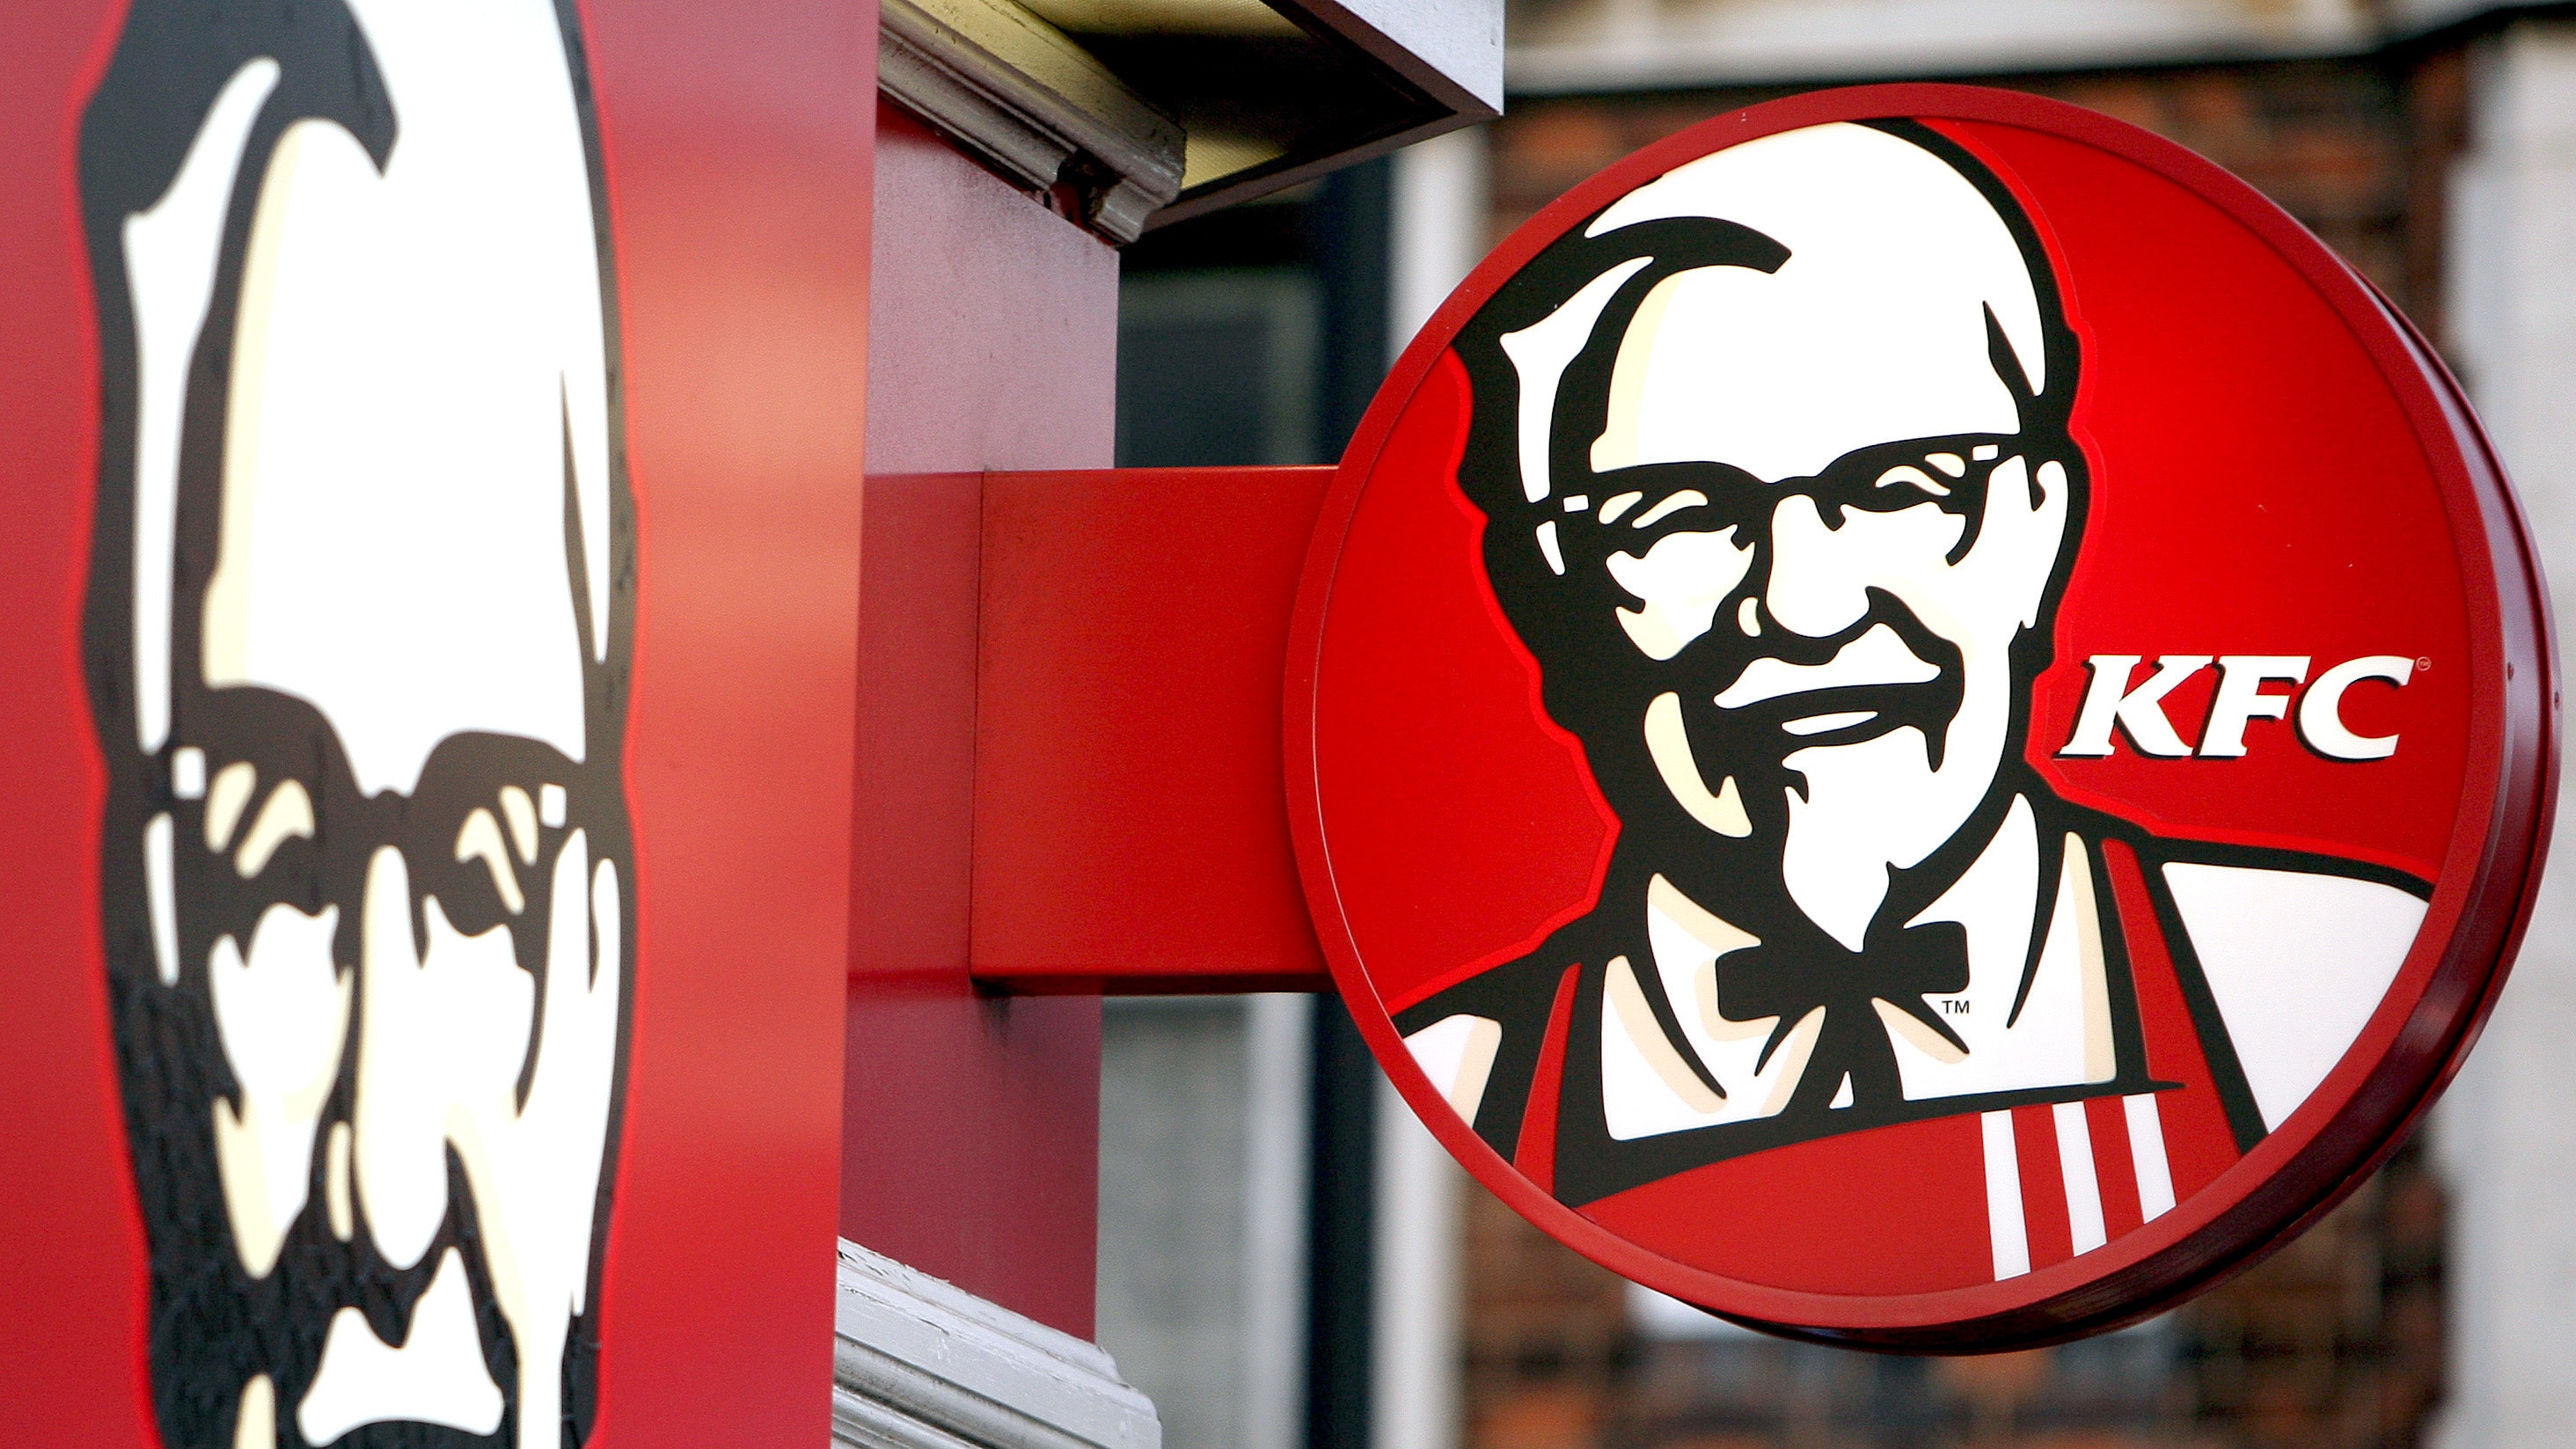 KFC returns to former distributor in wake of chicken shortage fiasco